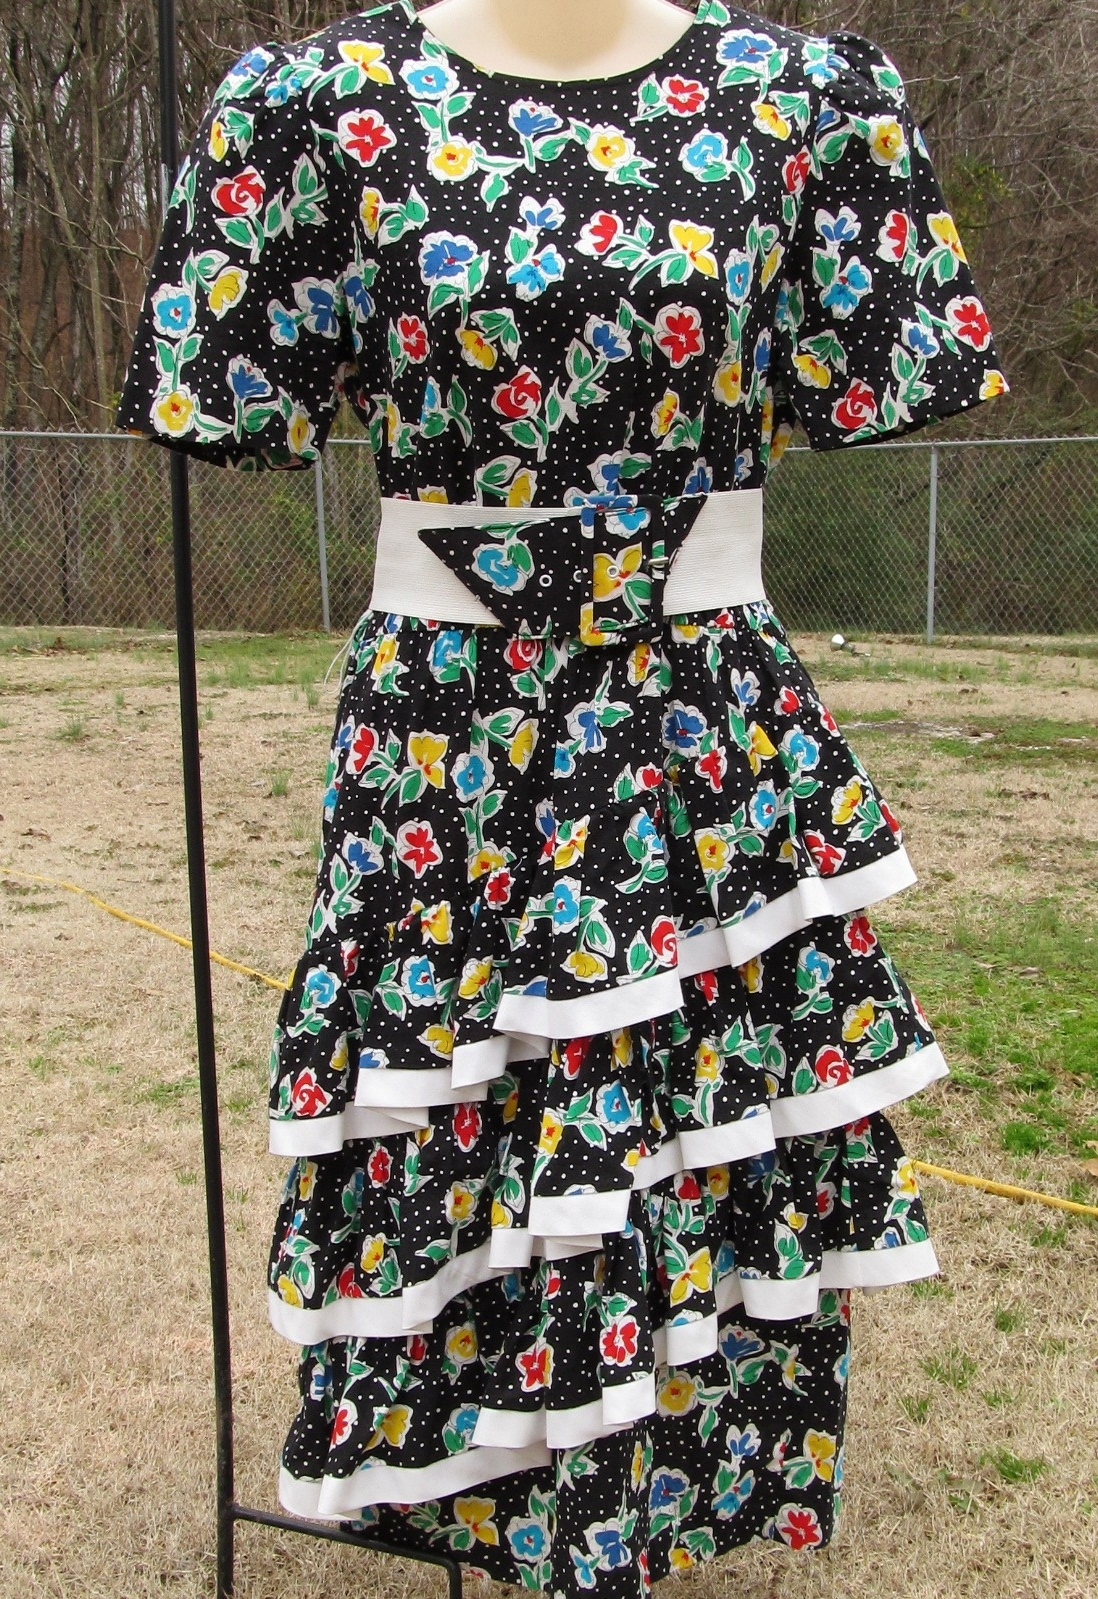 Vintage Straight Black Dress with 3 Cha Cha Layers 1980s Floral Design Size 11-1